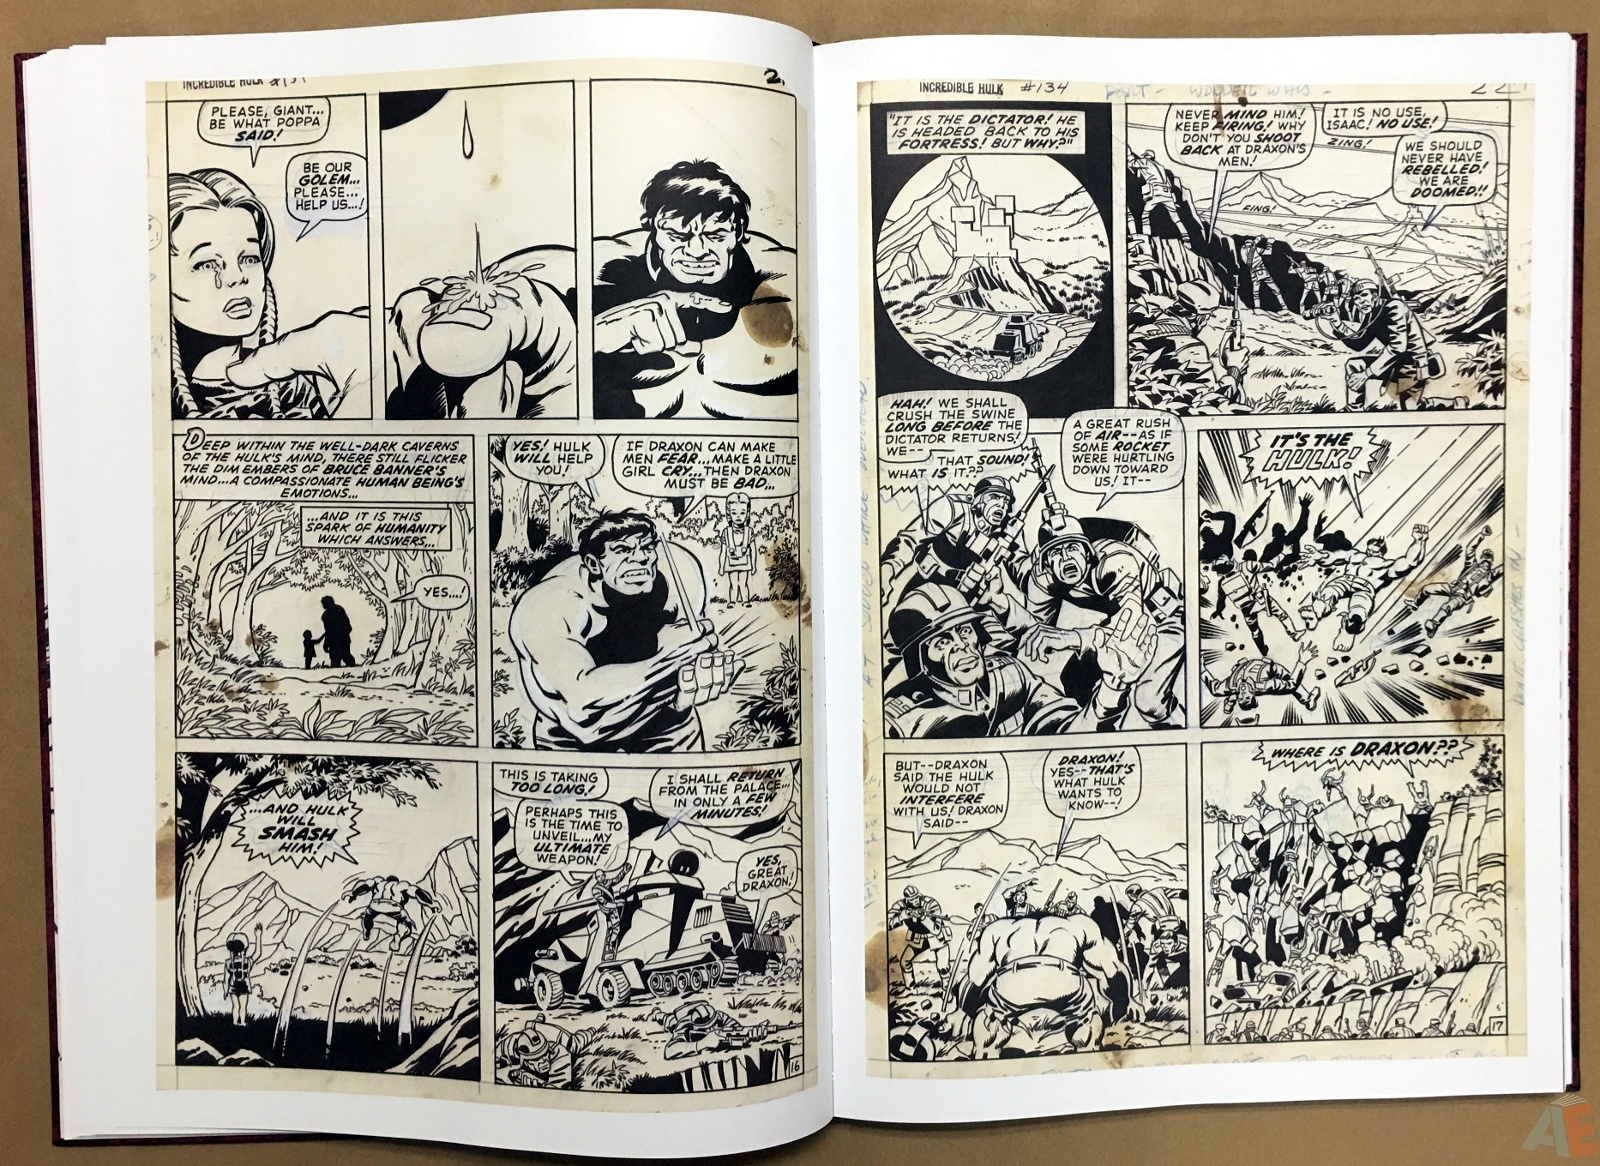 Herb Trimpe's The Incredible Hulk Artist's Edition 20